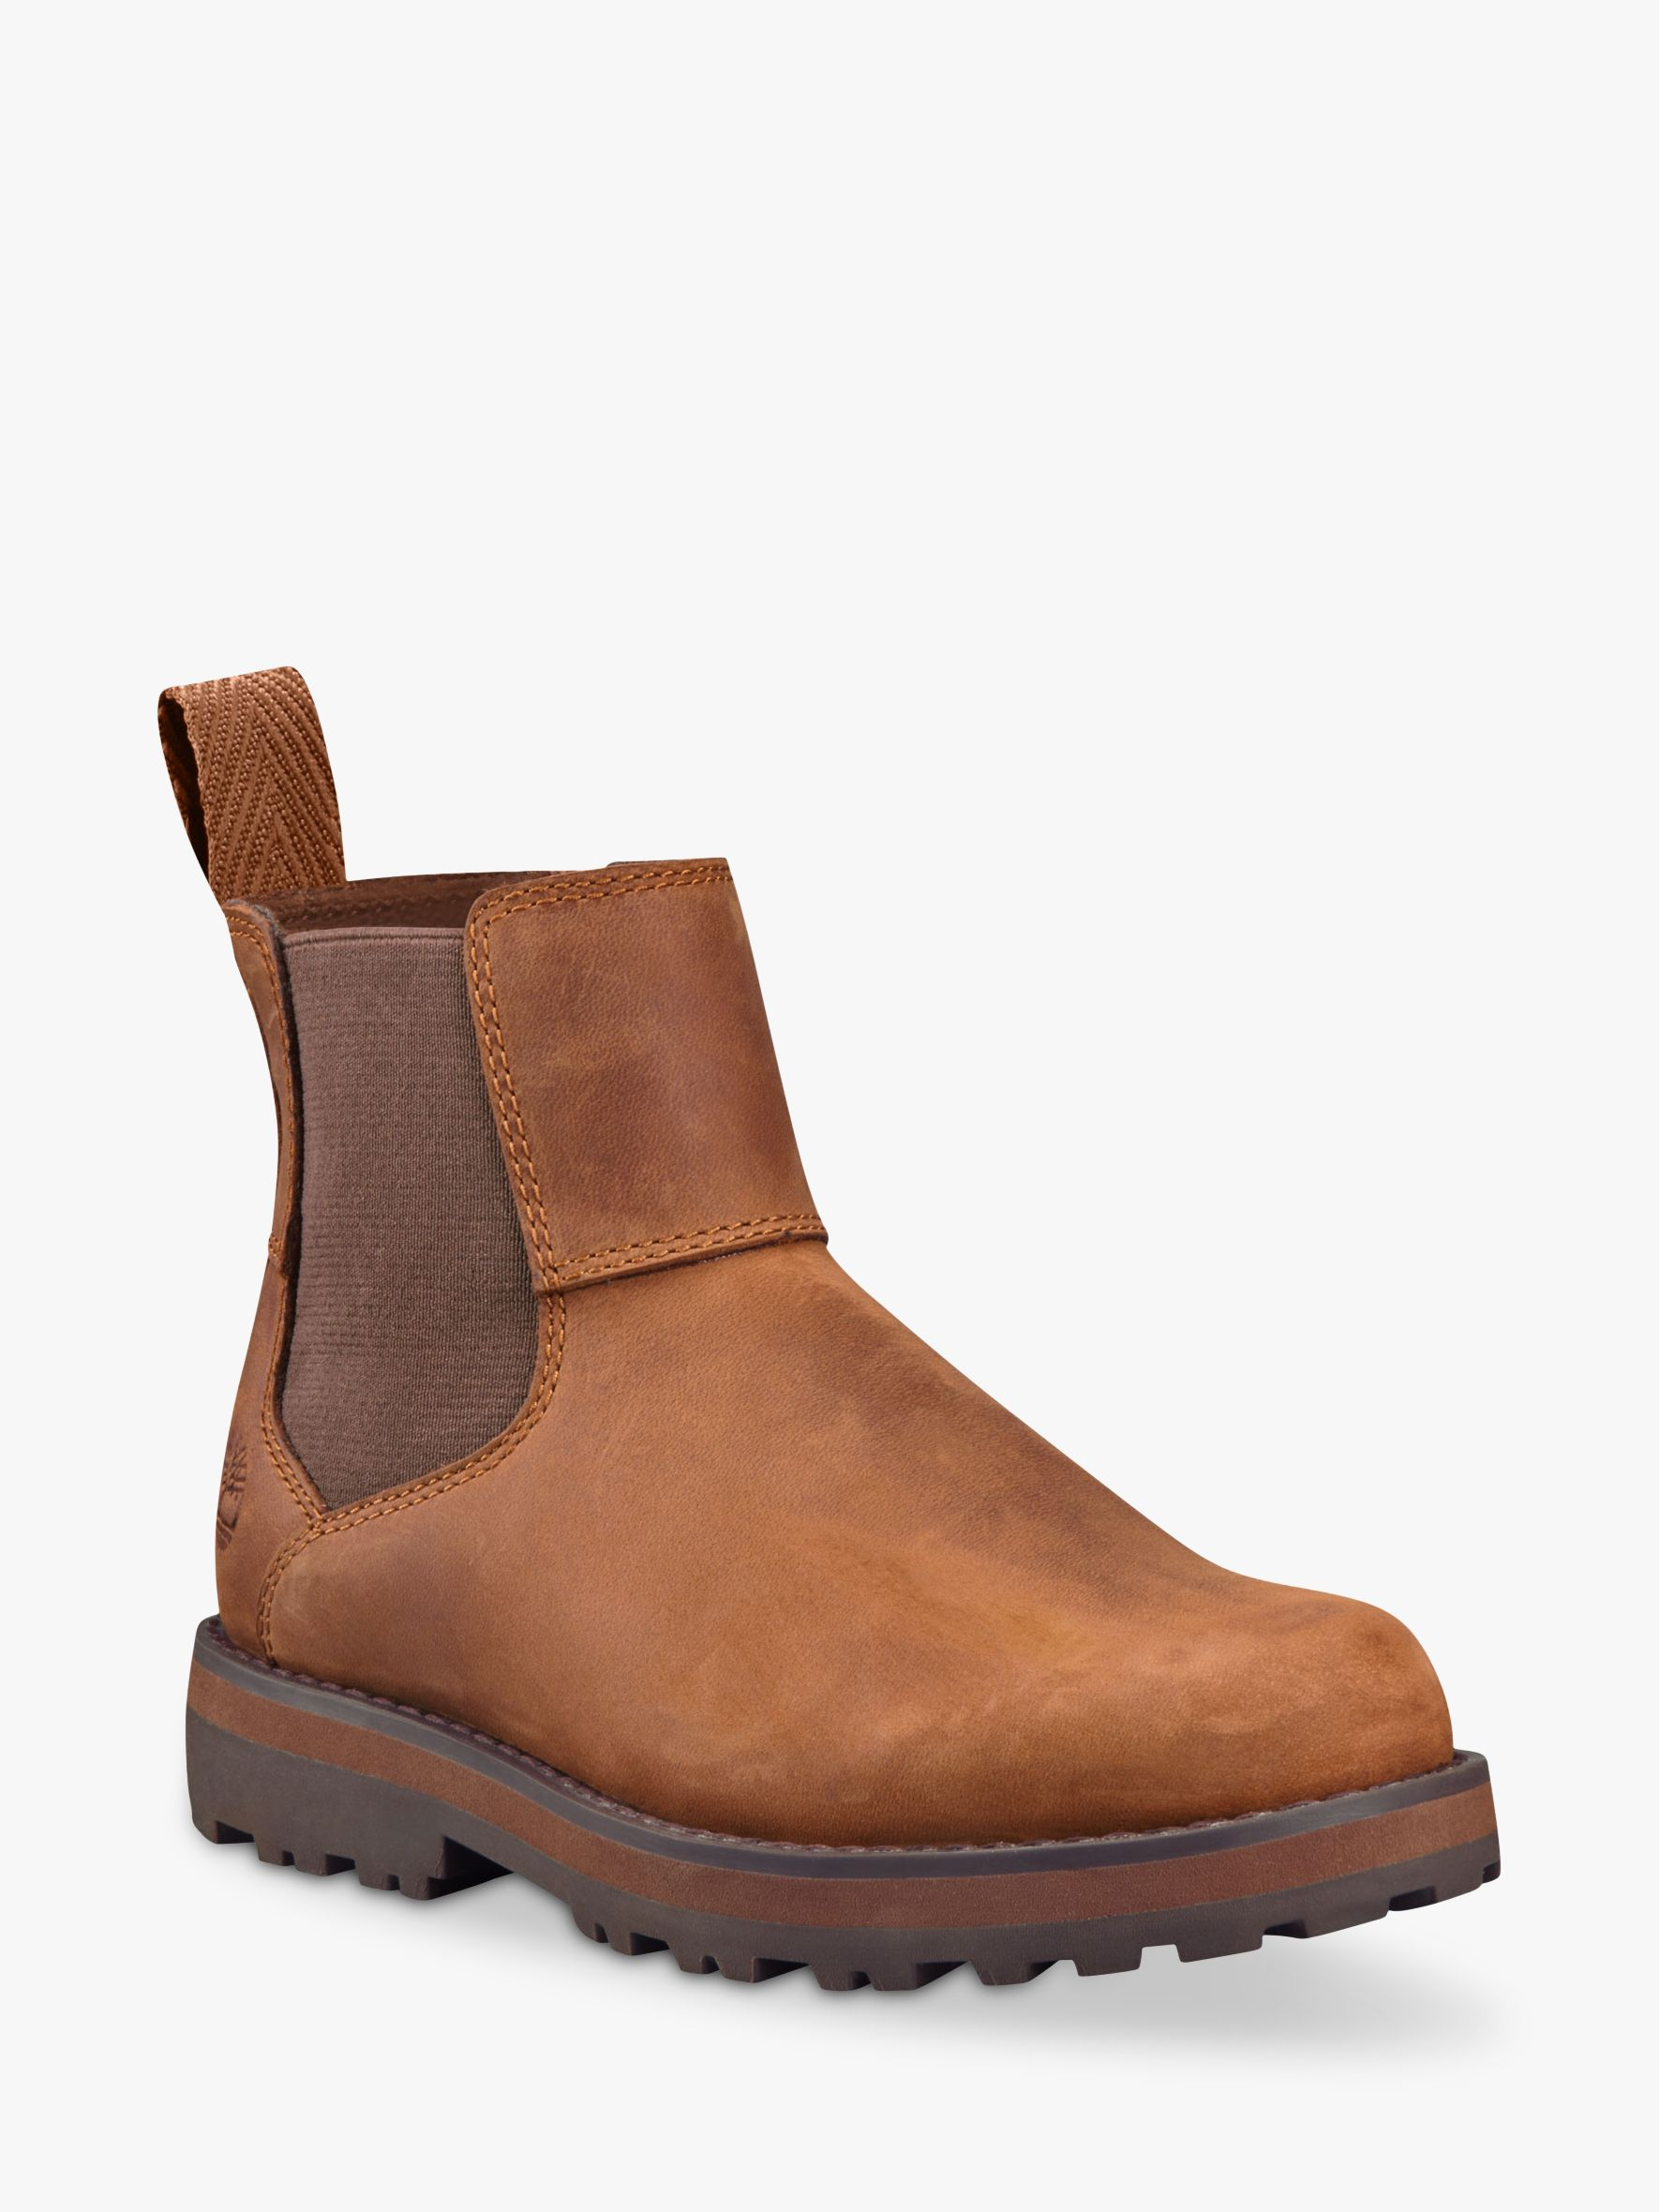 Timberland Children's Courma Kid Chelsea Boots